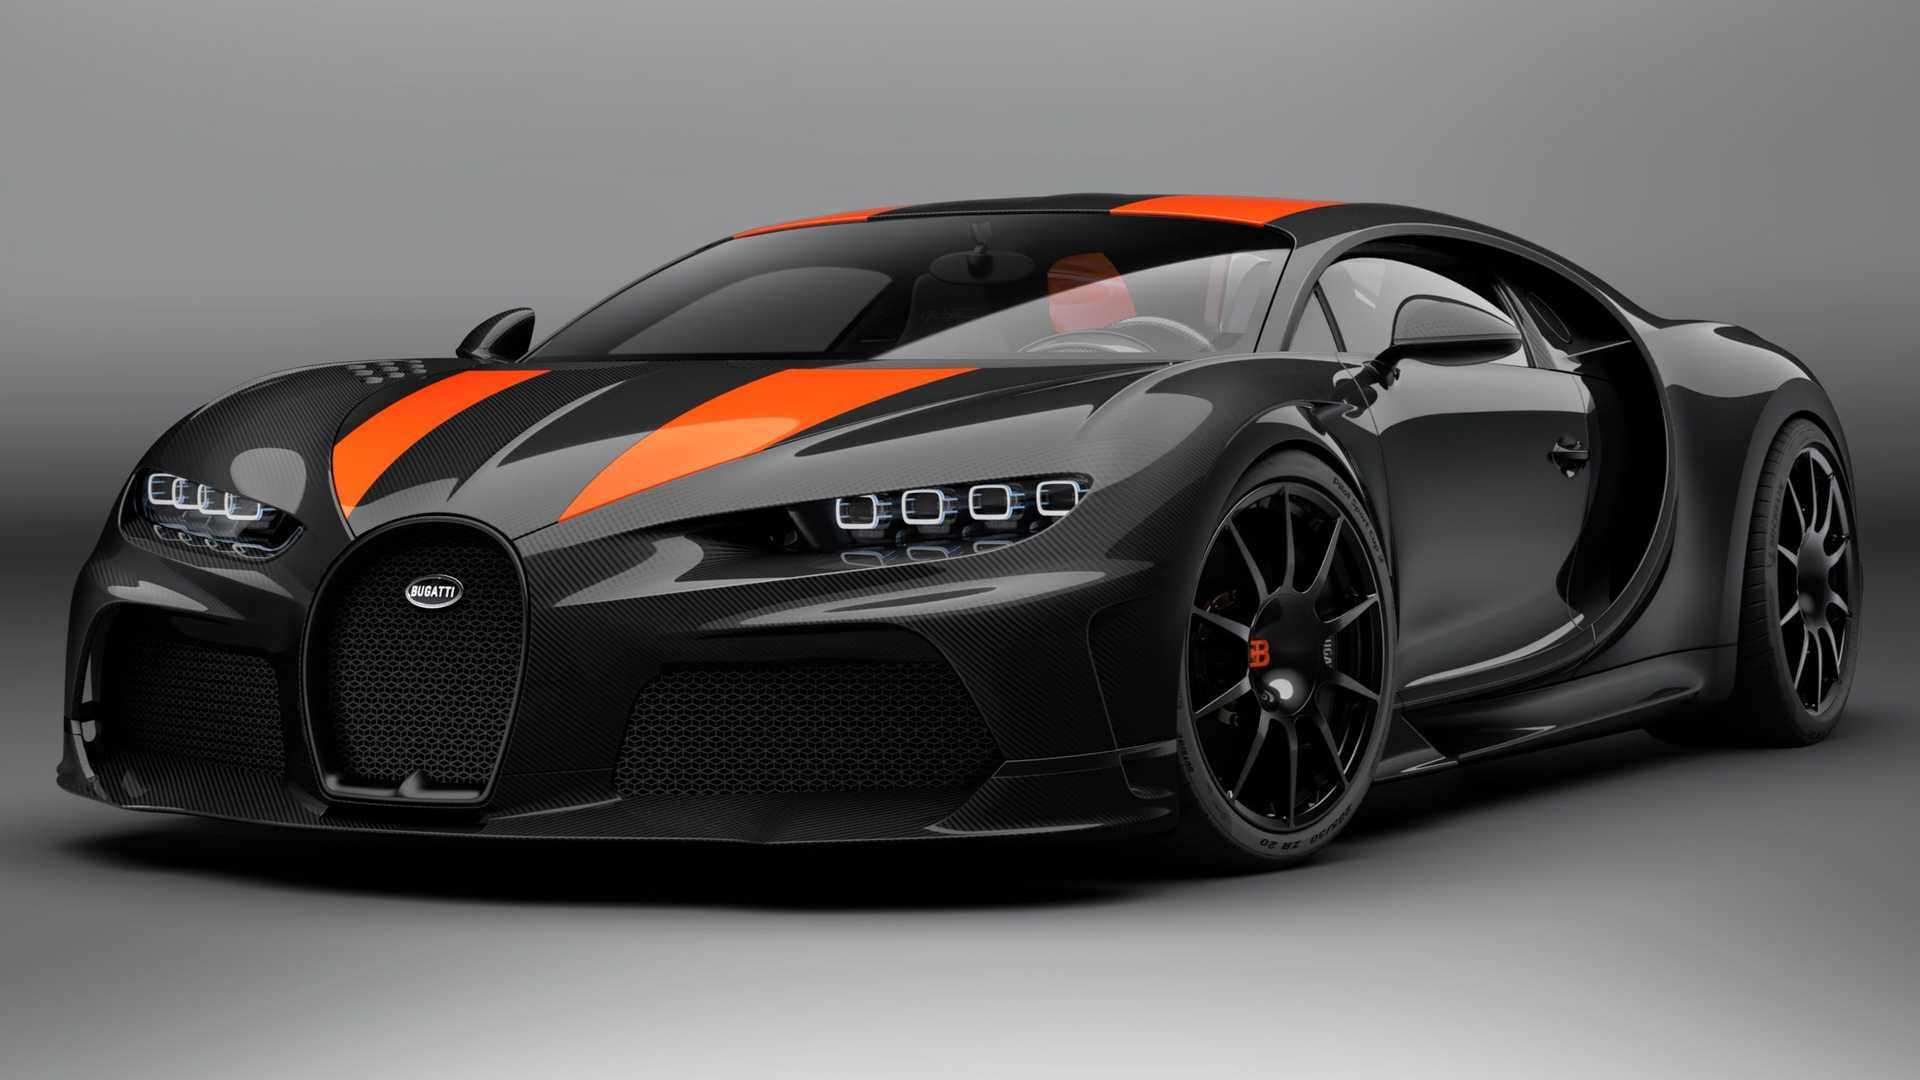 Bugatti Chiron Super Sport 300 Official Images Released